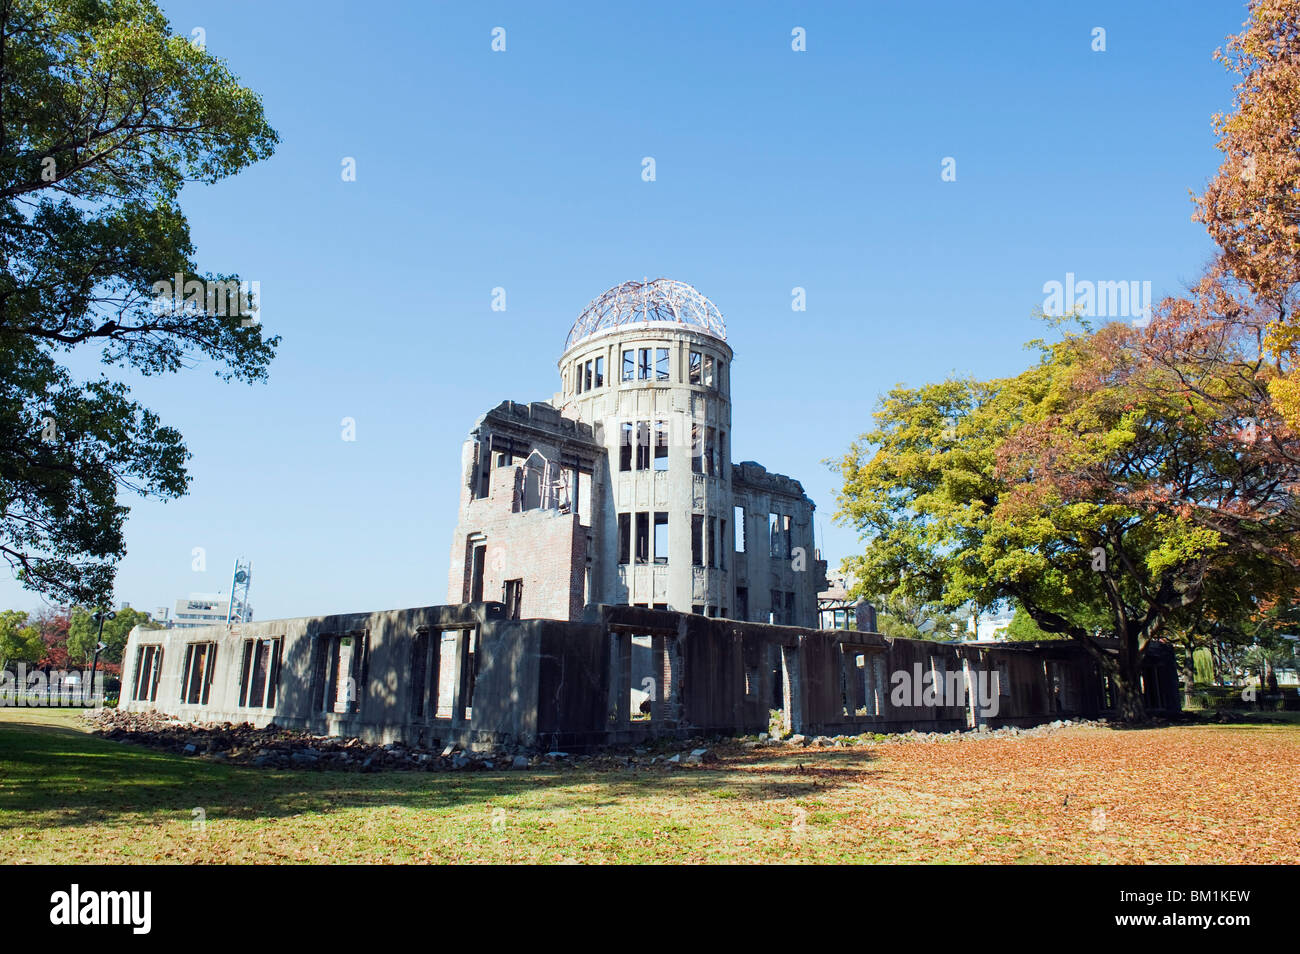 Atomic Bomb Dome, Hiroshima, UNESCO World Heritage Site, Hiroshima prefecture, Japan, Asia - Stock Image